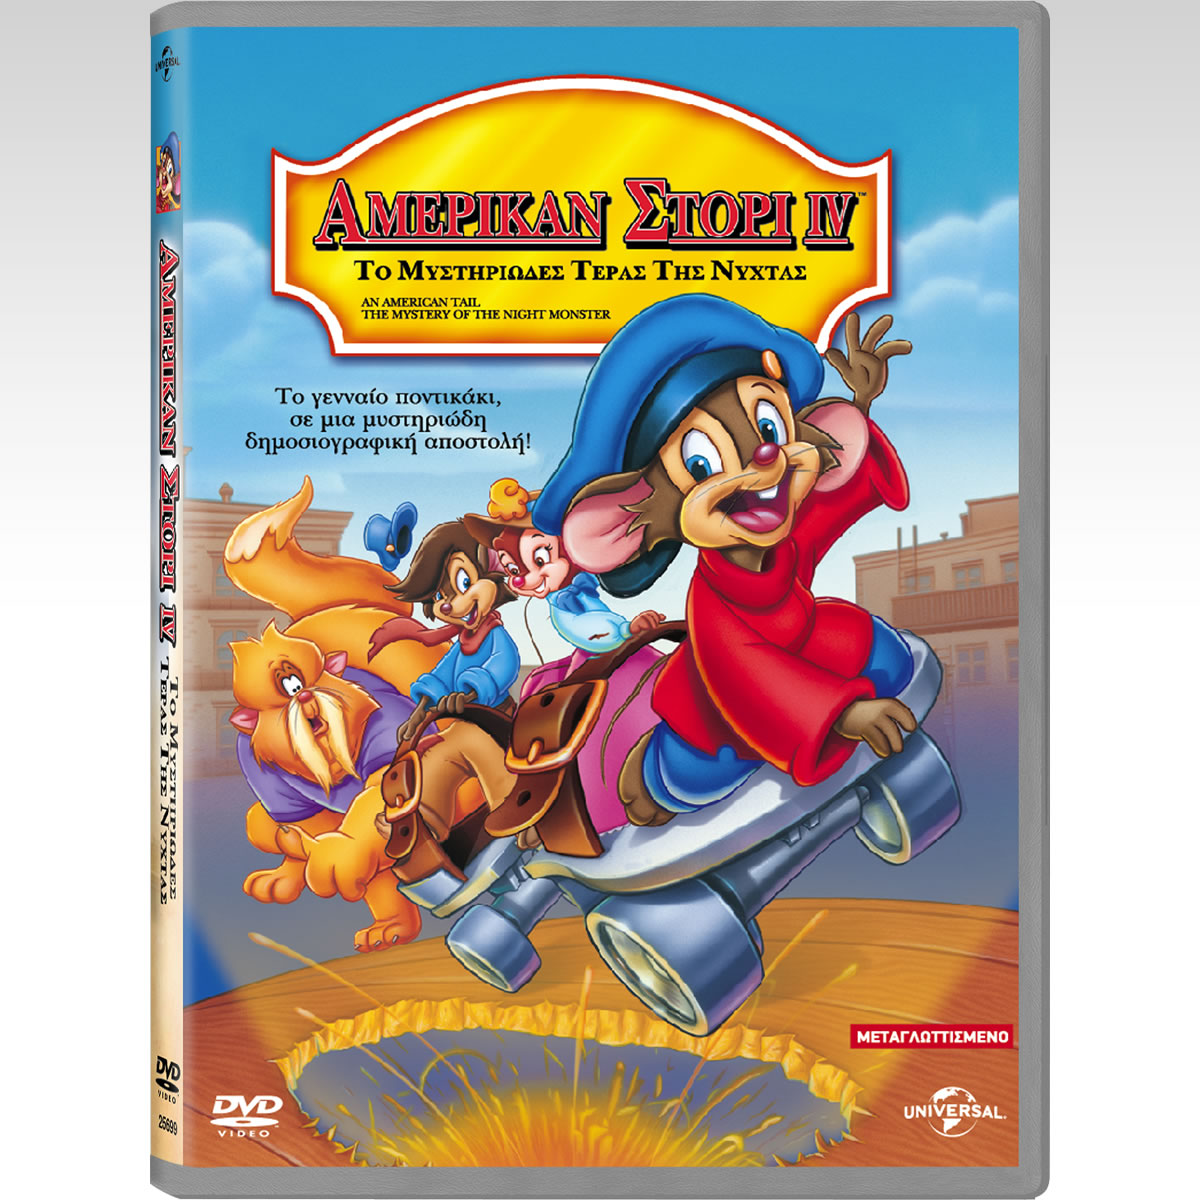 AN AMERICAN TAIL 4: THE MYSTERY OF THE NIGHT MONSTER - ΑΜΕΡΙΚΑΝ ΣΤΟΡΥ 4: ΤΟ ΜΥΣΤΗΡΙΟ ΤΟΥ ΝΥΧΤΕΡΙΝΟΥ ΤΕΡΑΤΟΣ (DVD)